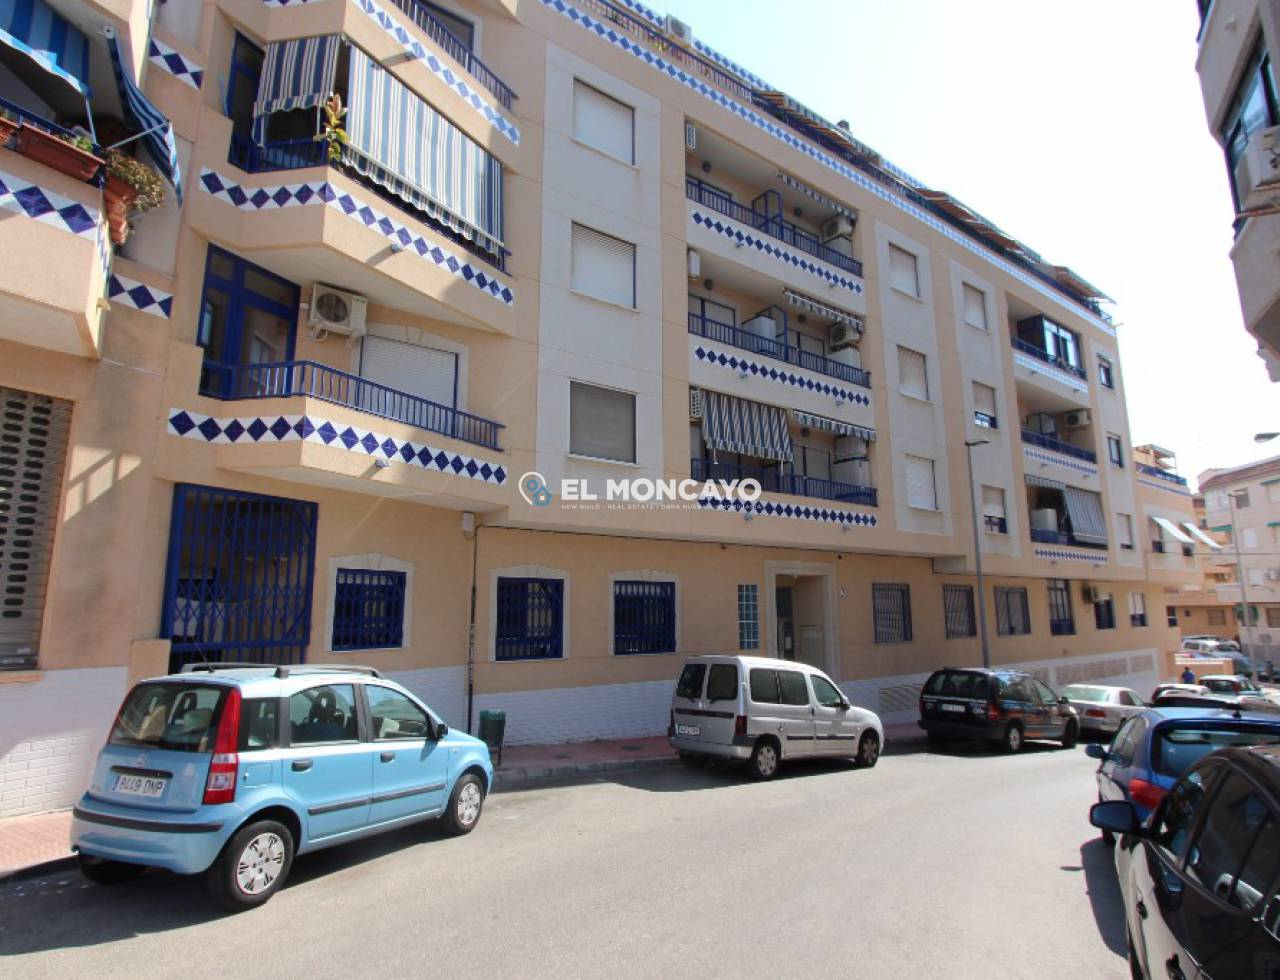 Appartement te koop in Guardamar del Segura - Costa Blanca ten zuiden 3290 (17)